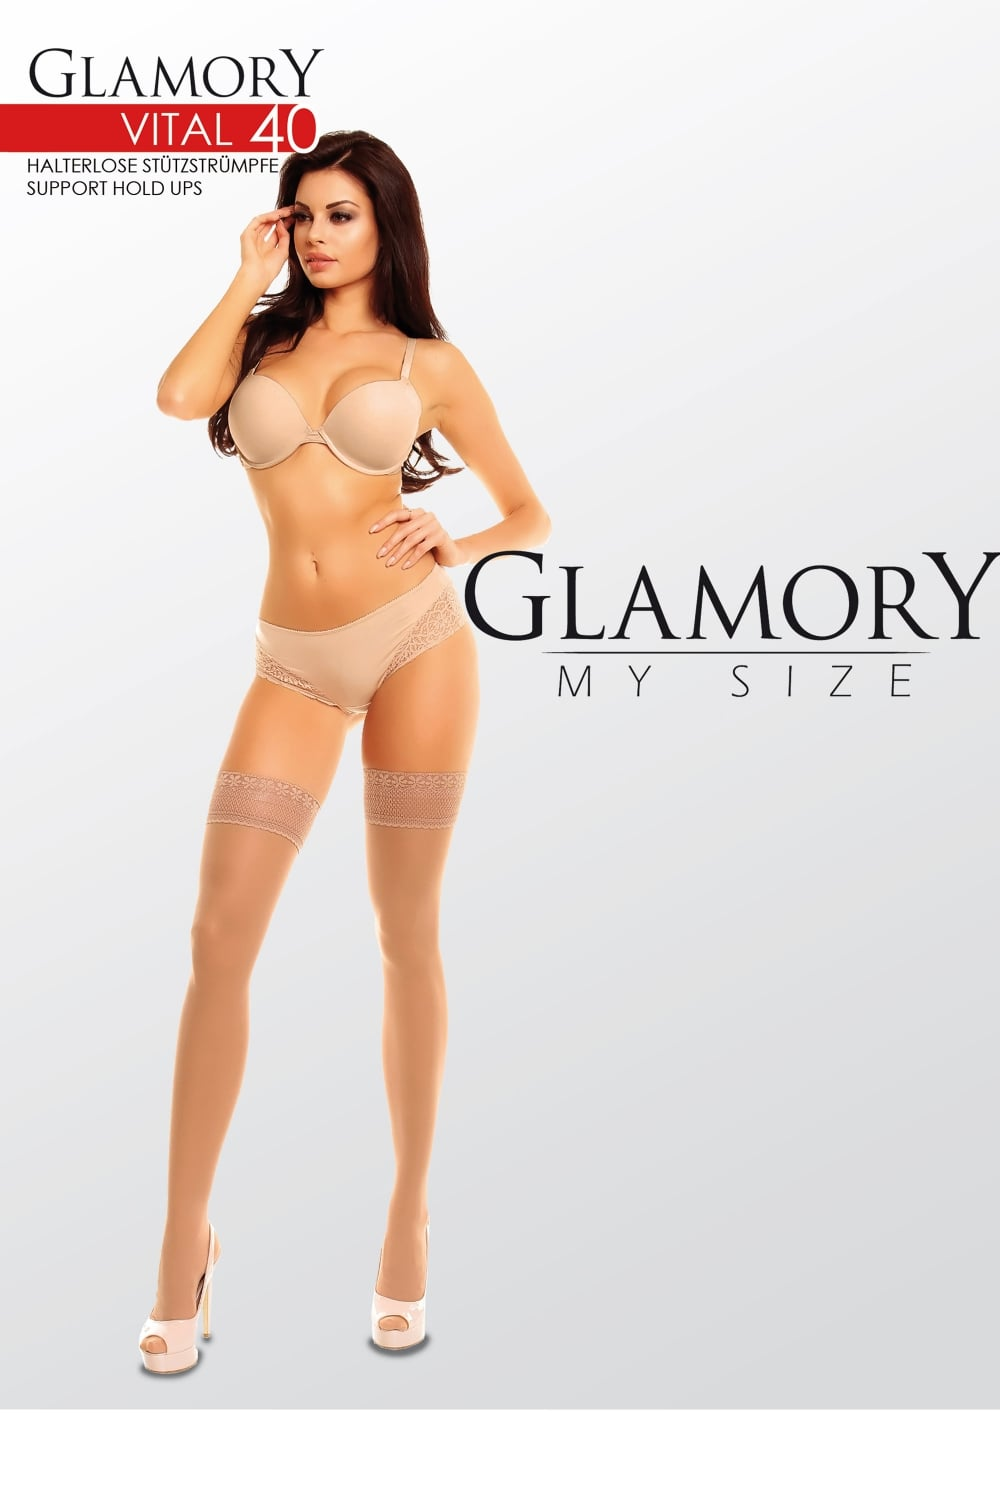 faa1d90cc Glamory Vital 40 Support Hold Ups.